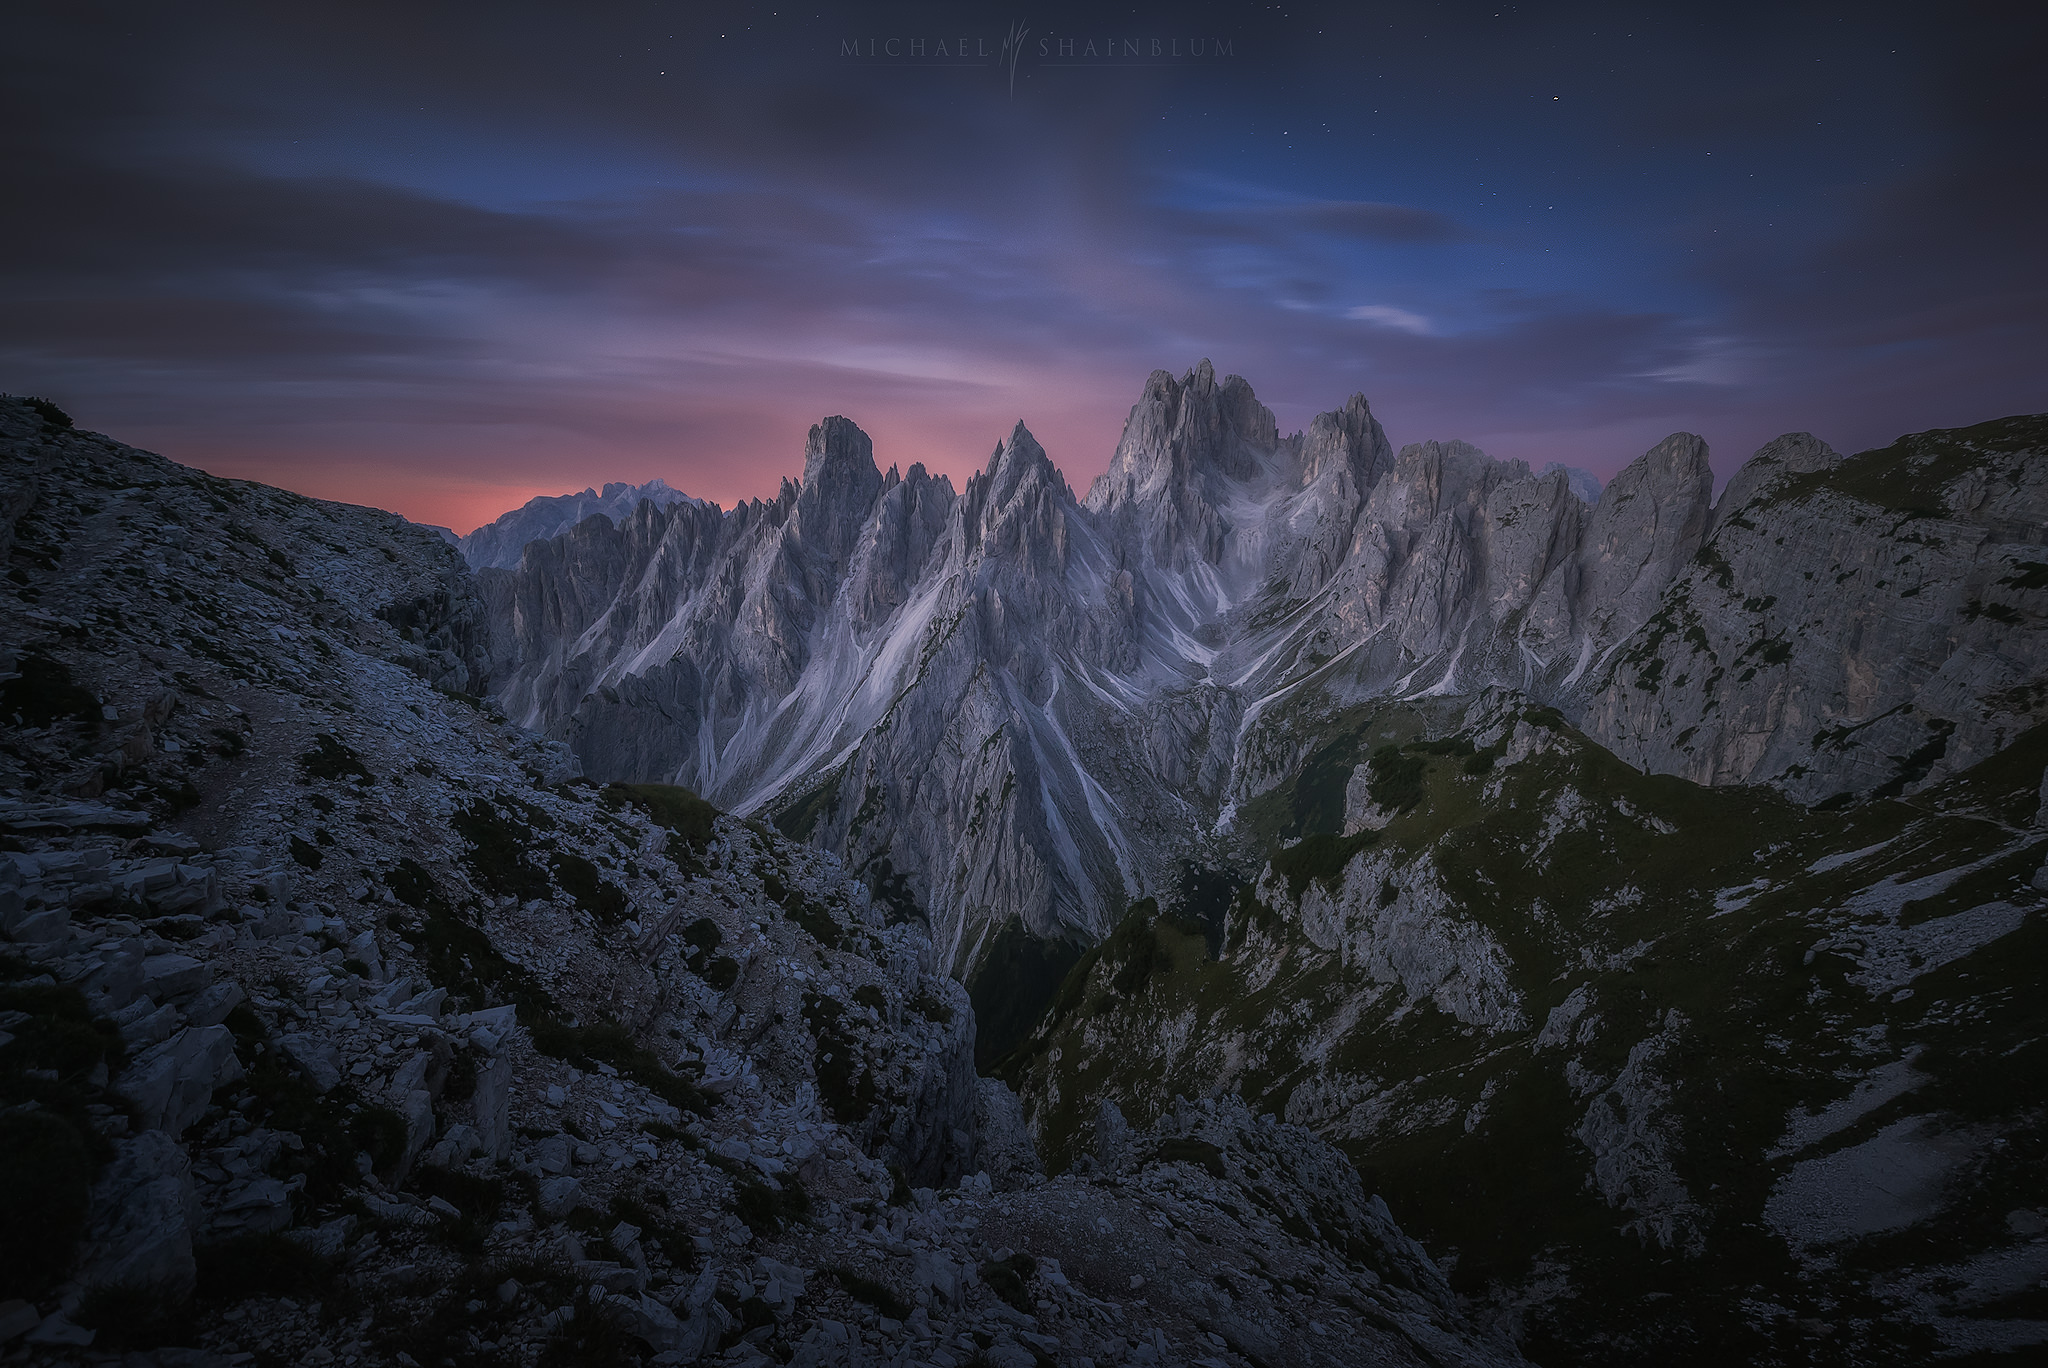 Dolomites Timelapse and Dolomites Landscape Photography ...